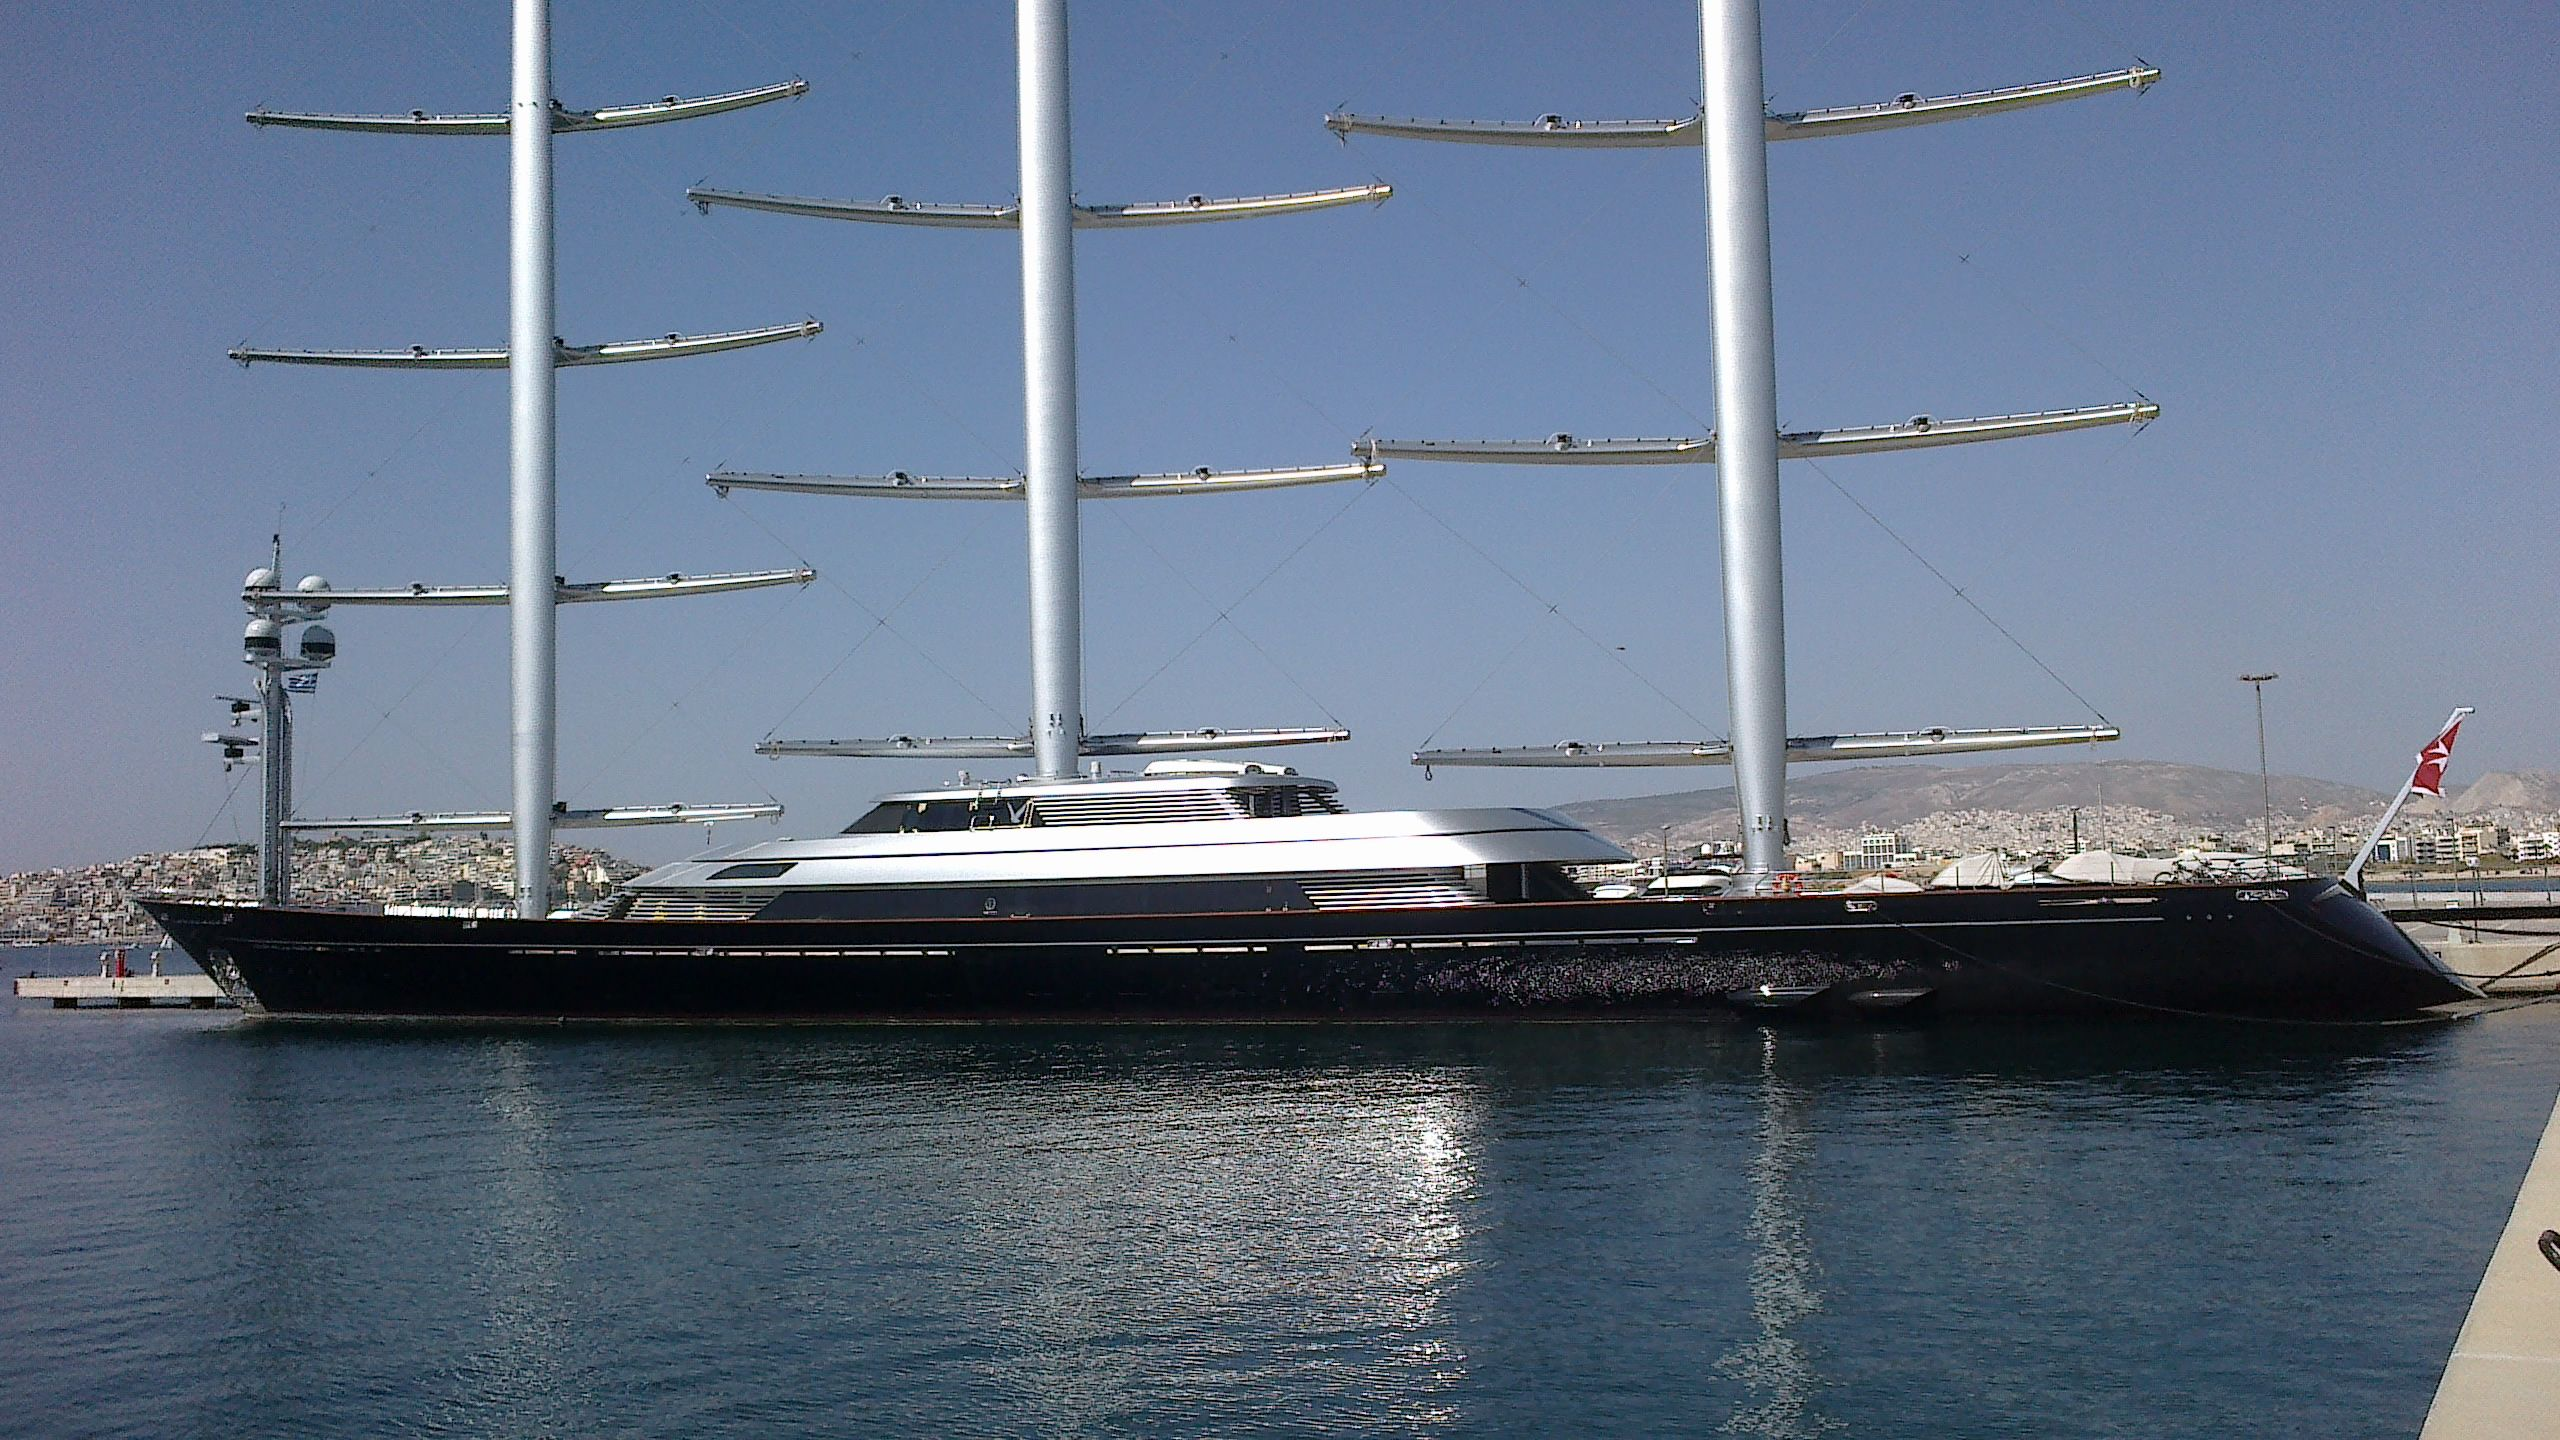 S Y Maltese Falcon Is Not A Classic Yacht She S A New Class Of Yacht Her Revolutionary Sailing System The Falcon Rig Sets A N Classic Yachts Sailing Boat